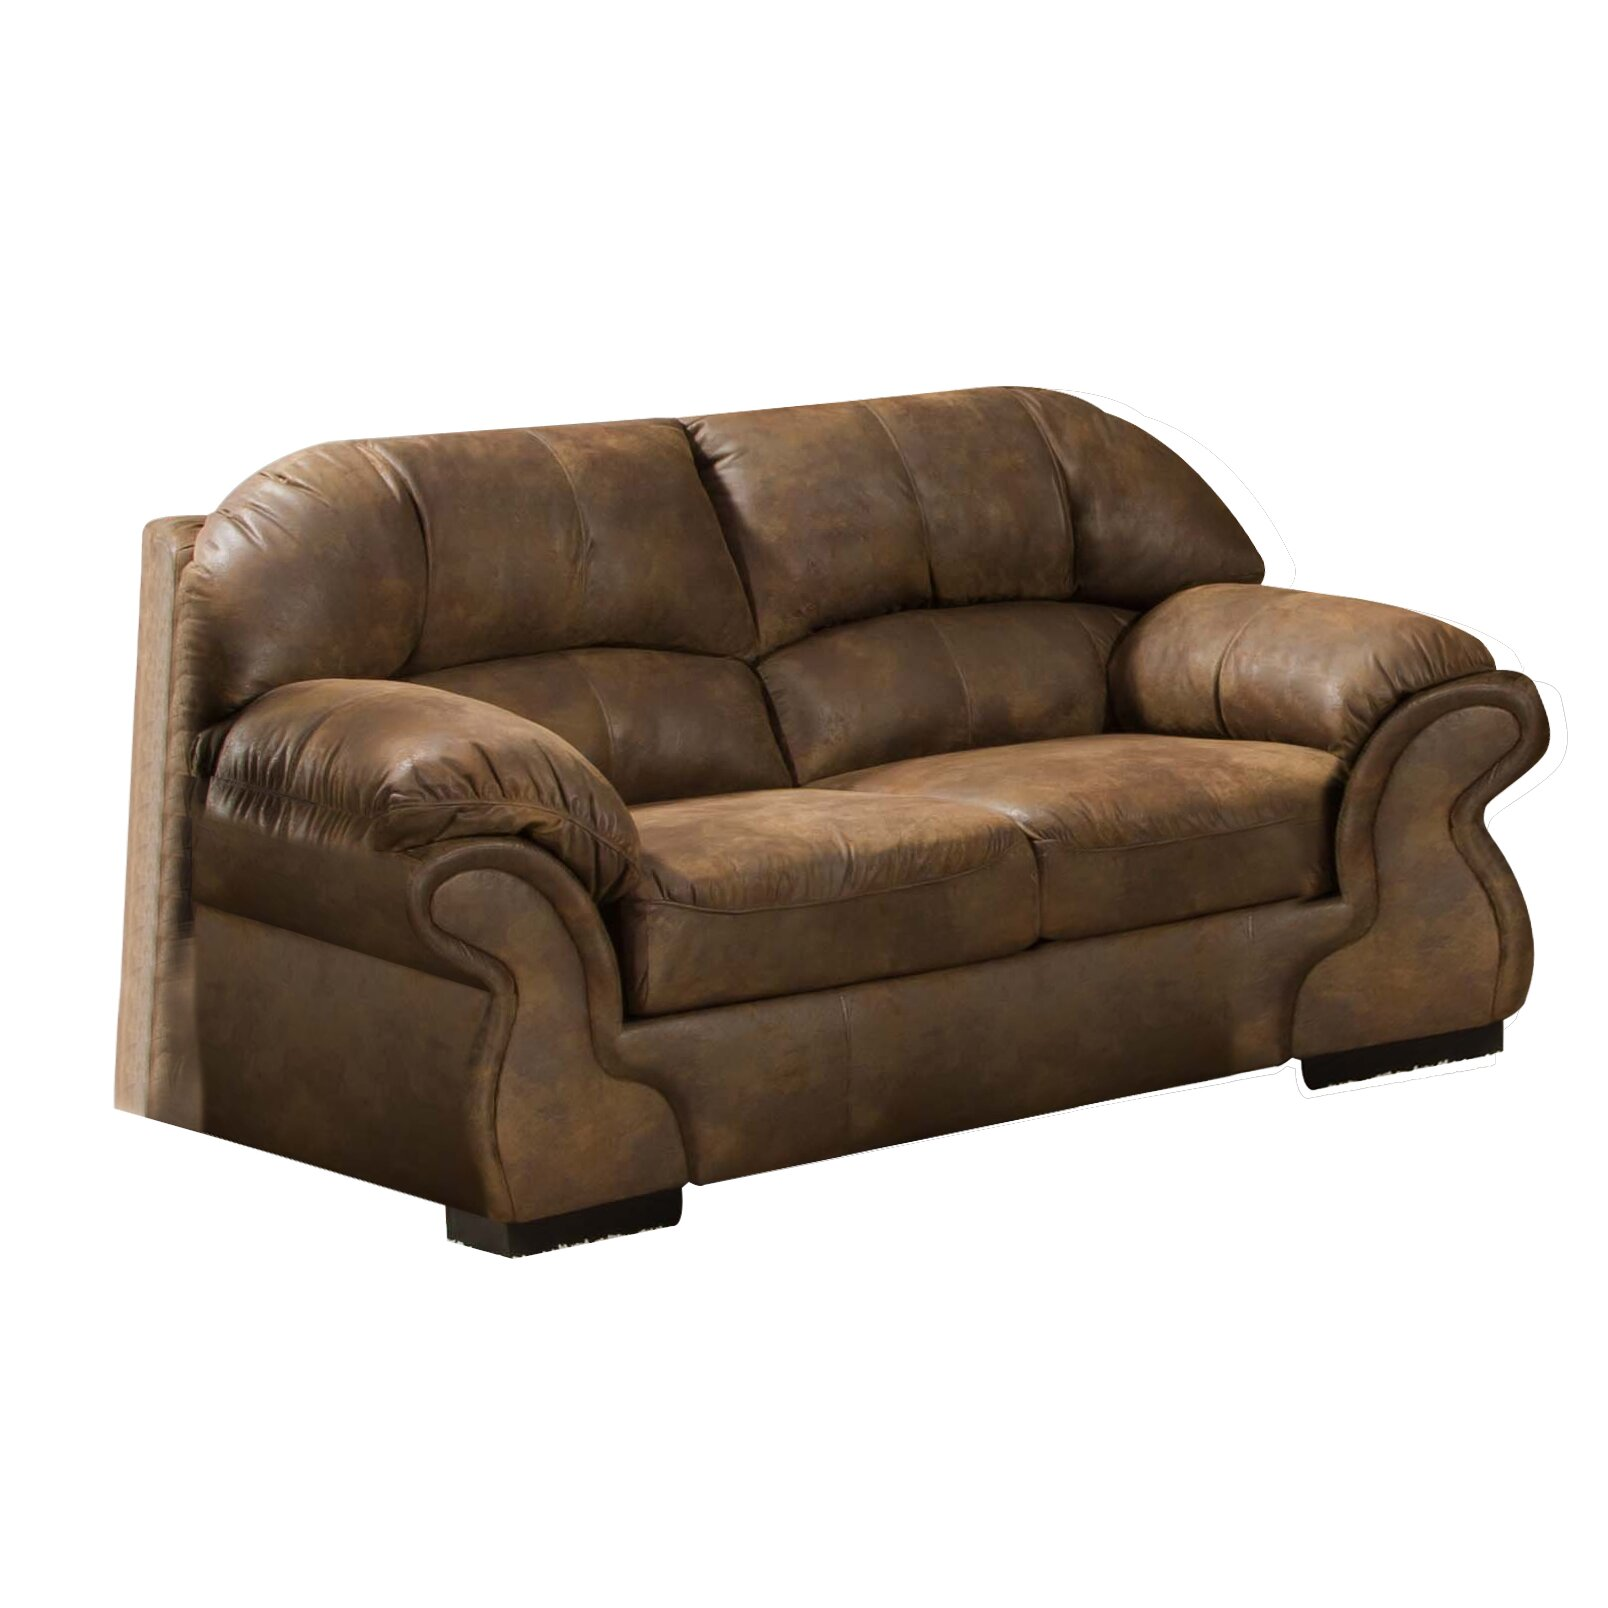 Simmons Upholstery Pinto Loveseat Reviews Wayfair